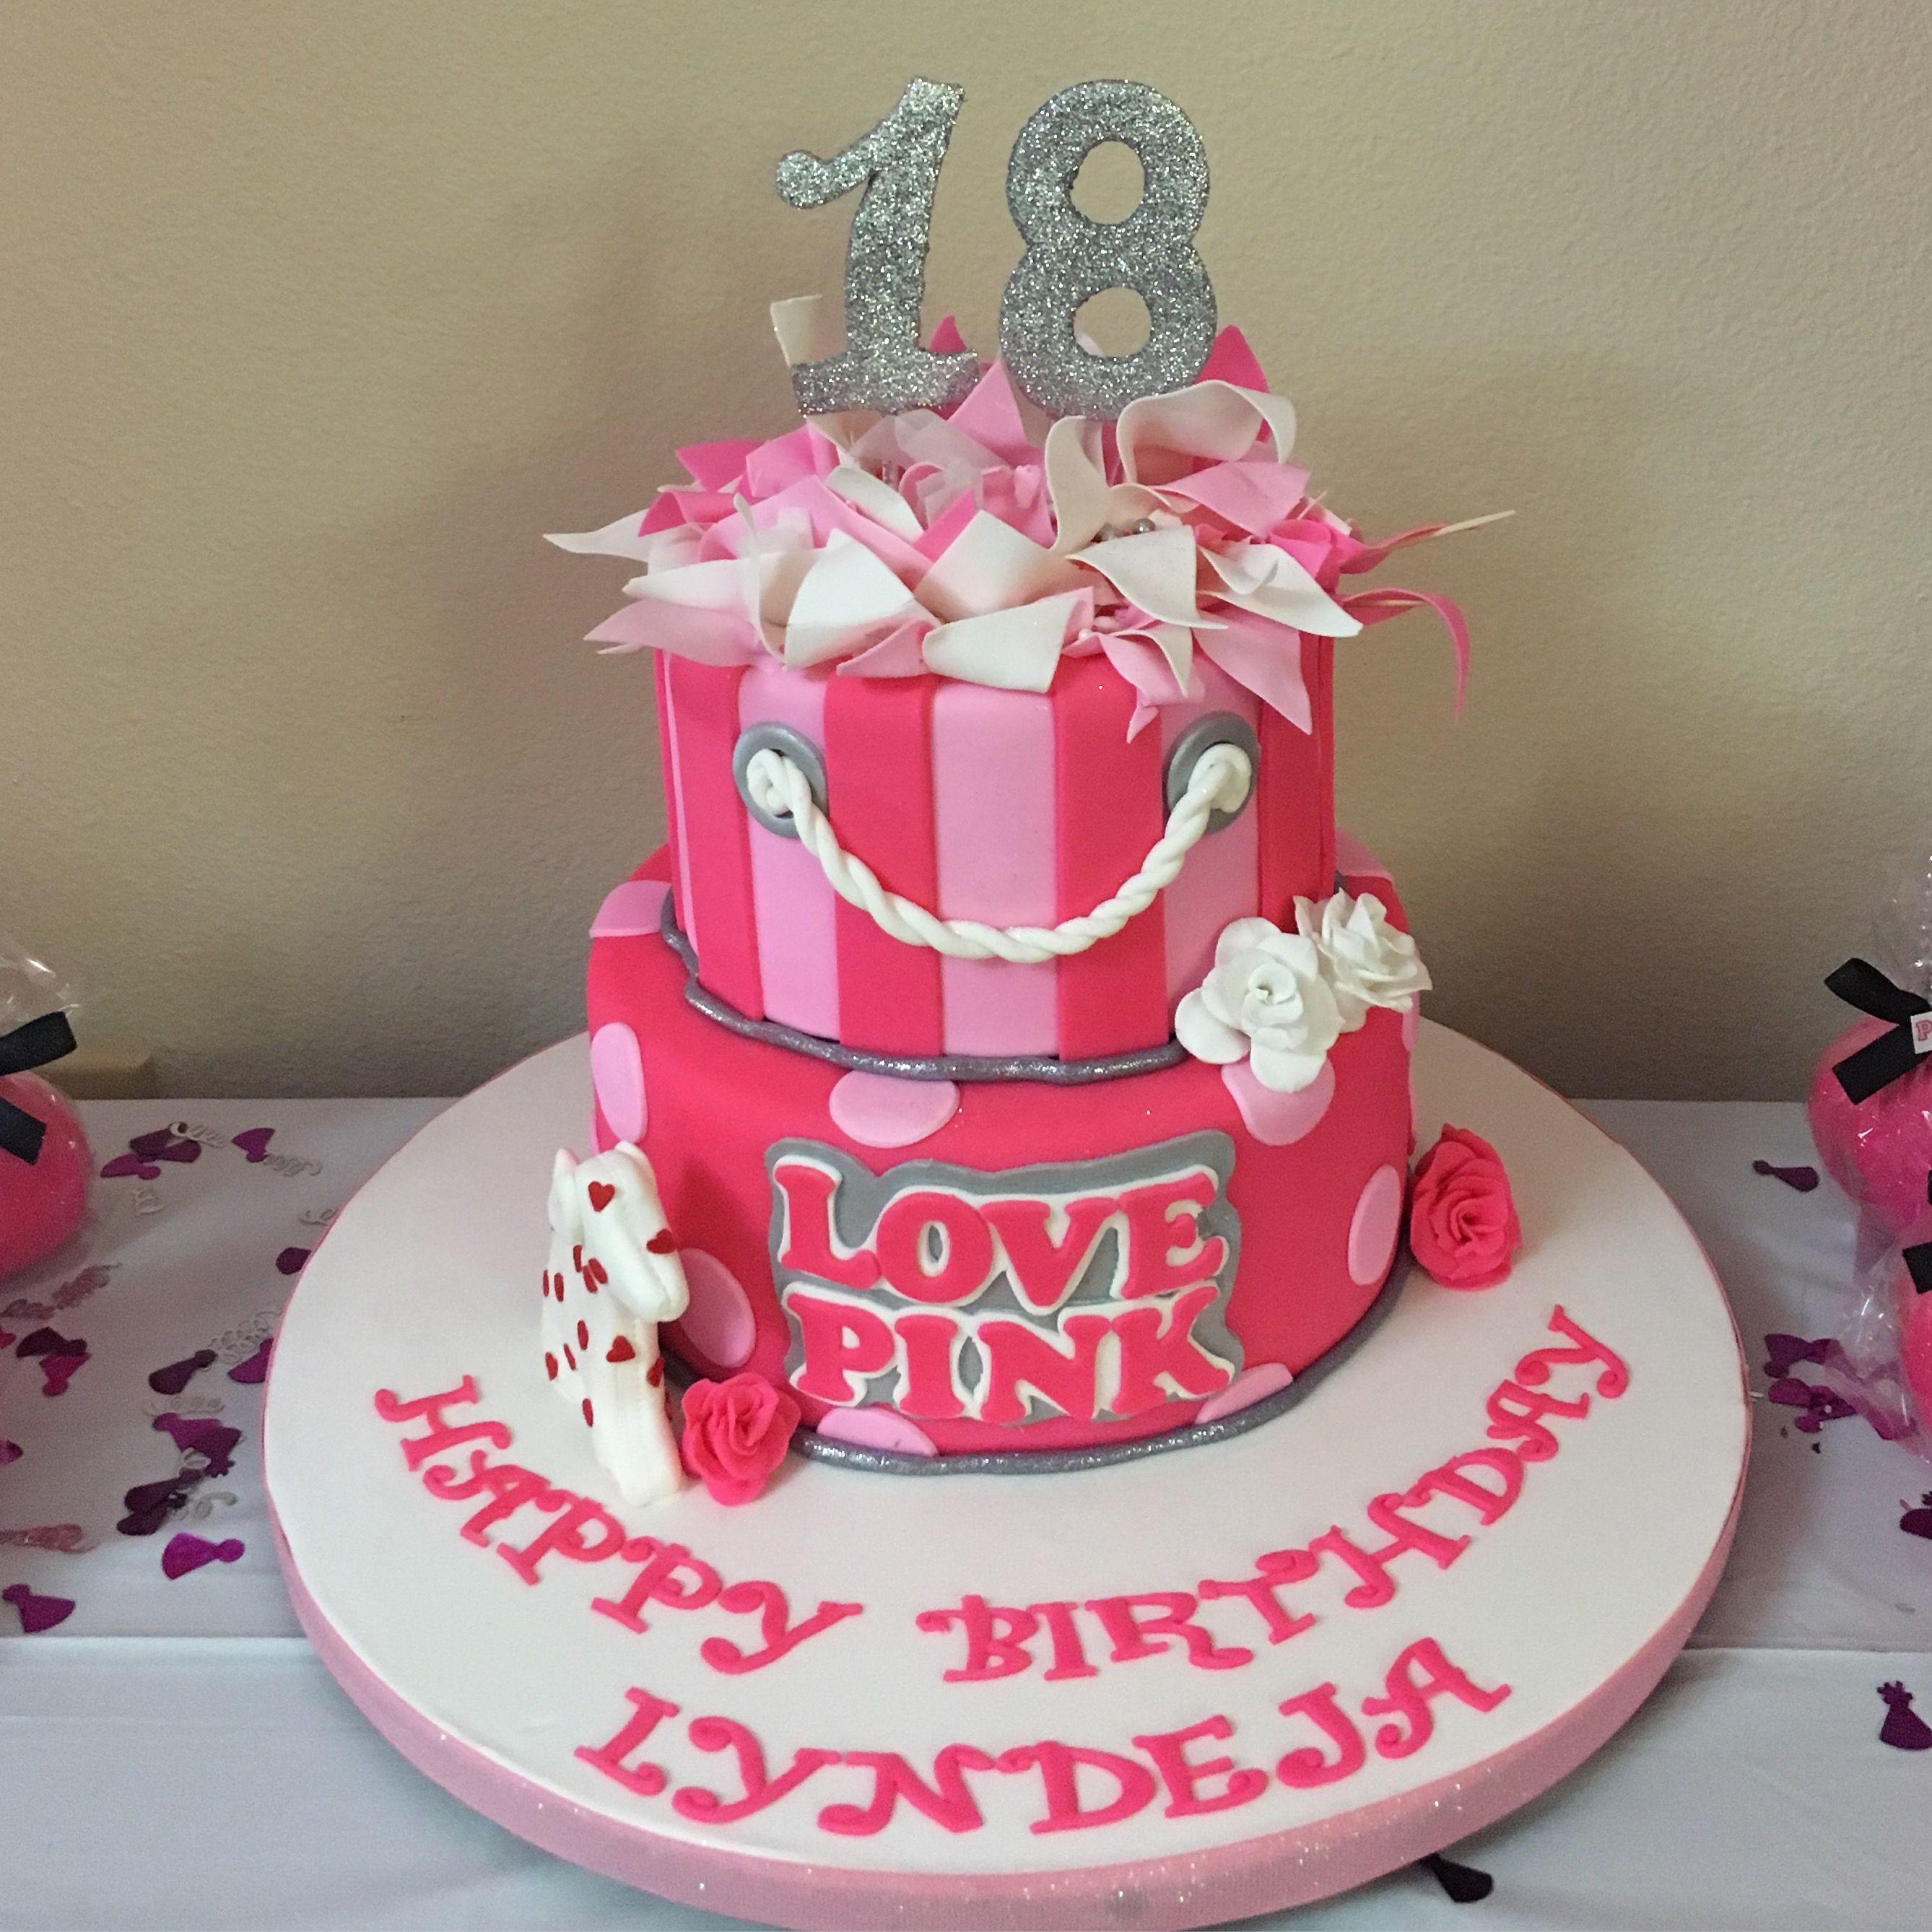 Pin By Kim On Victoria Secret Pink Party Birthday Cake